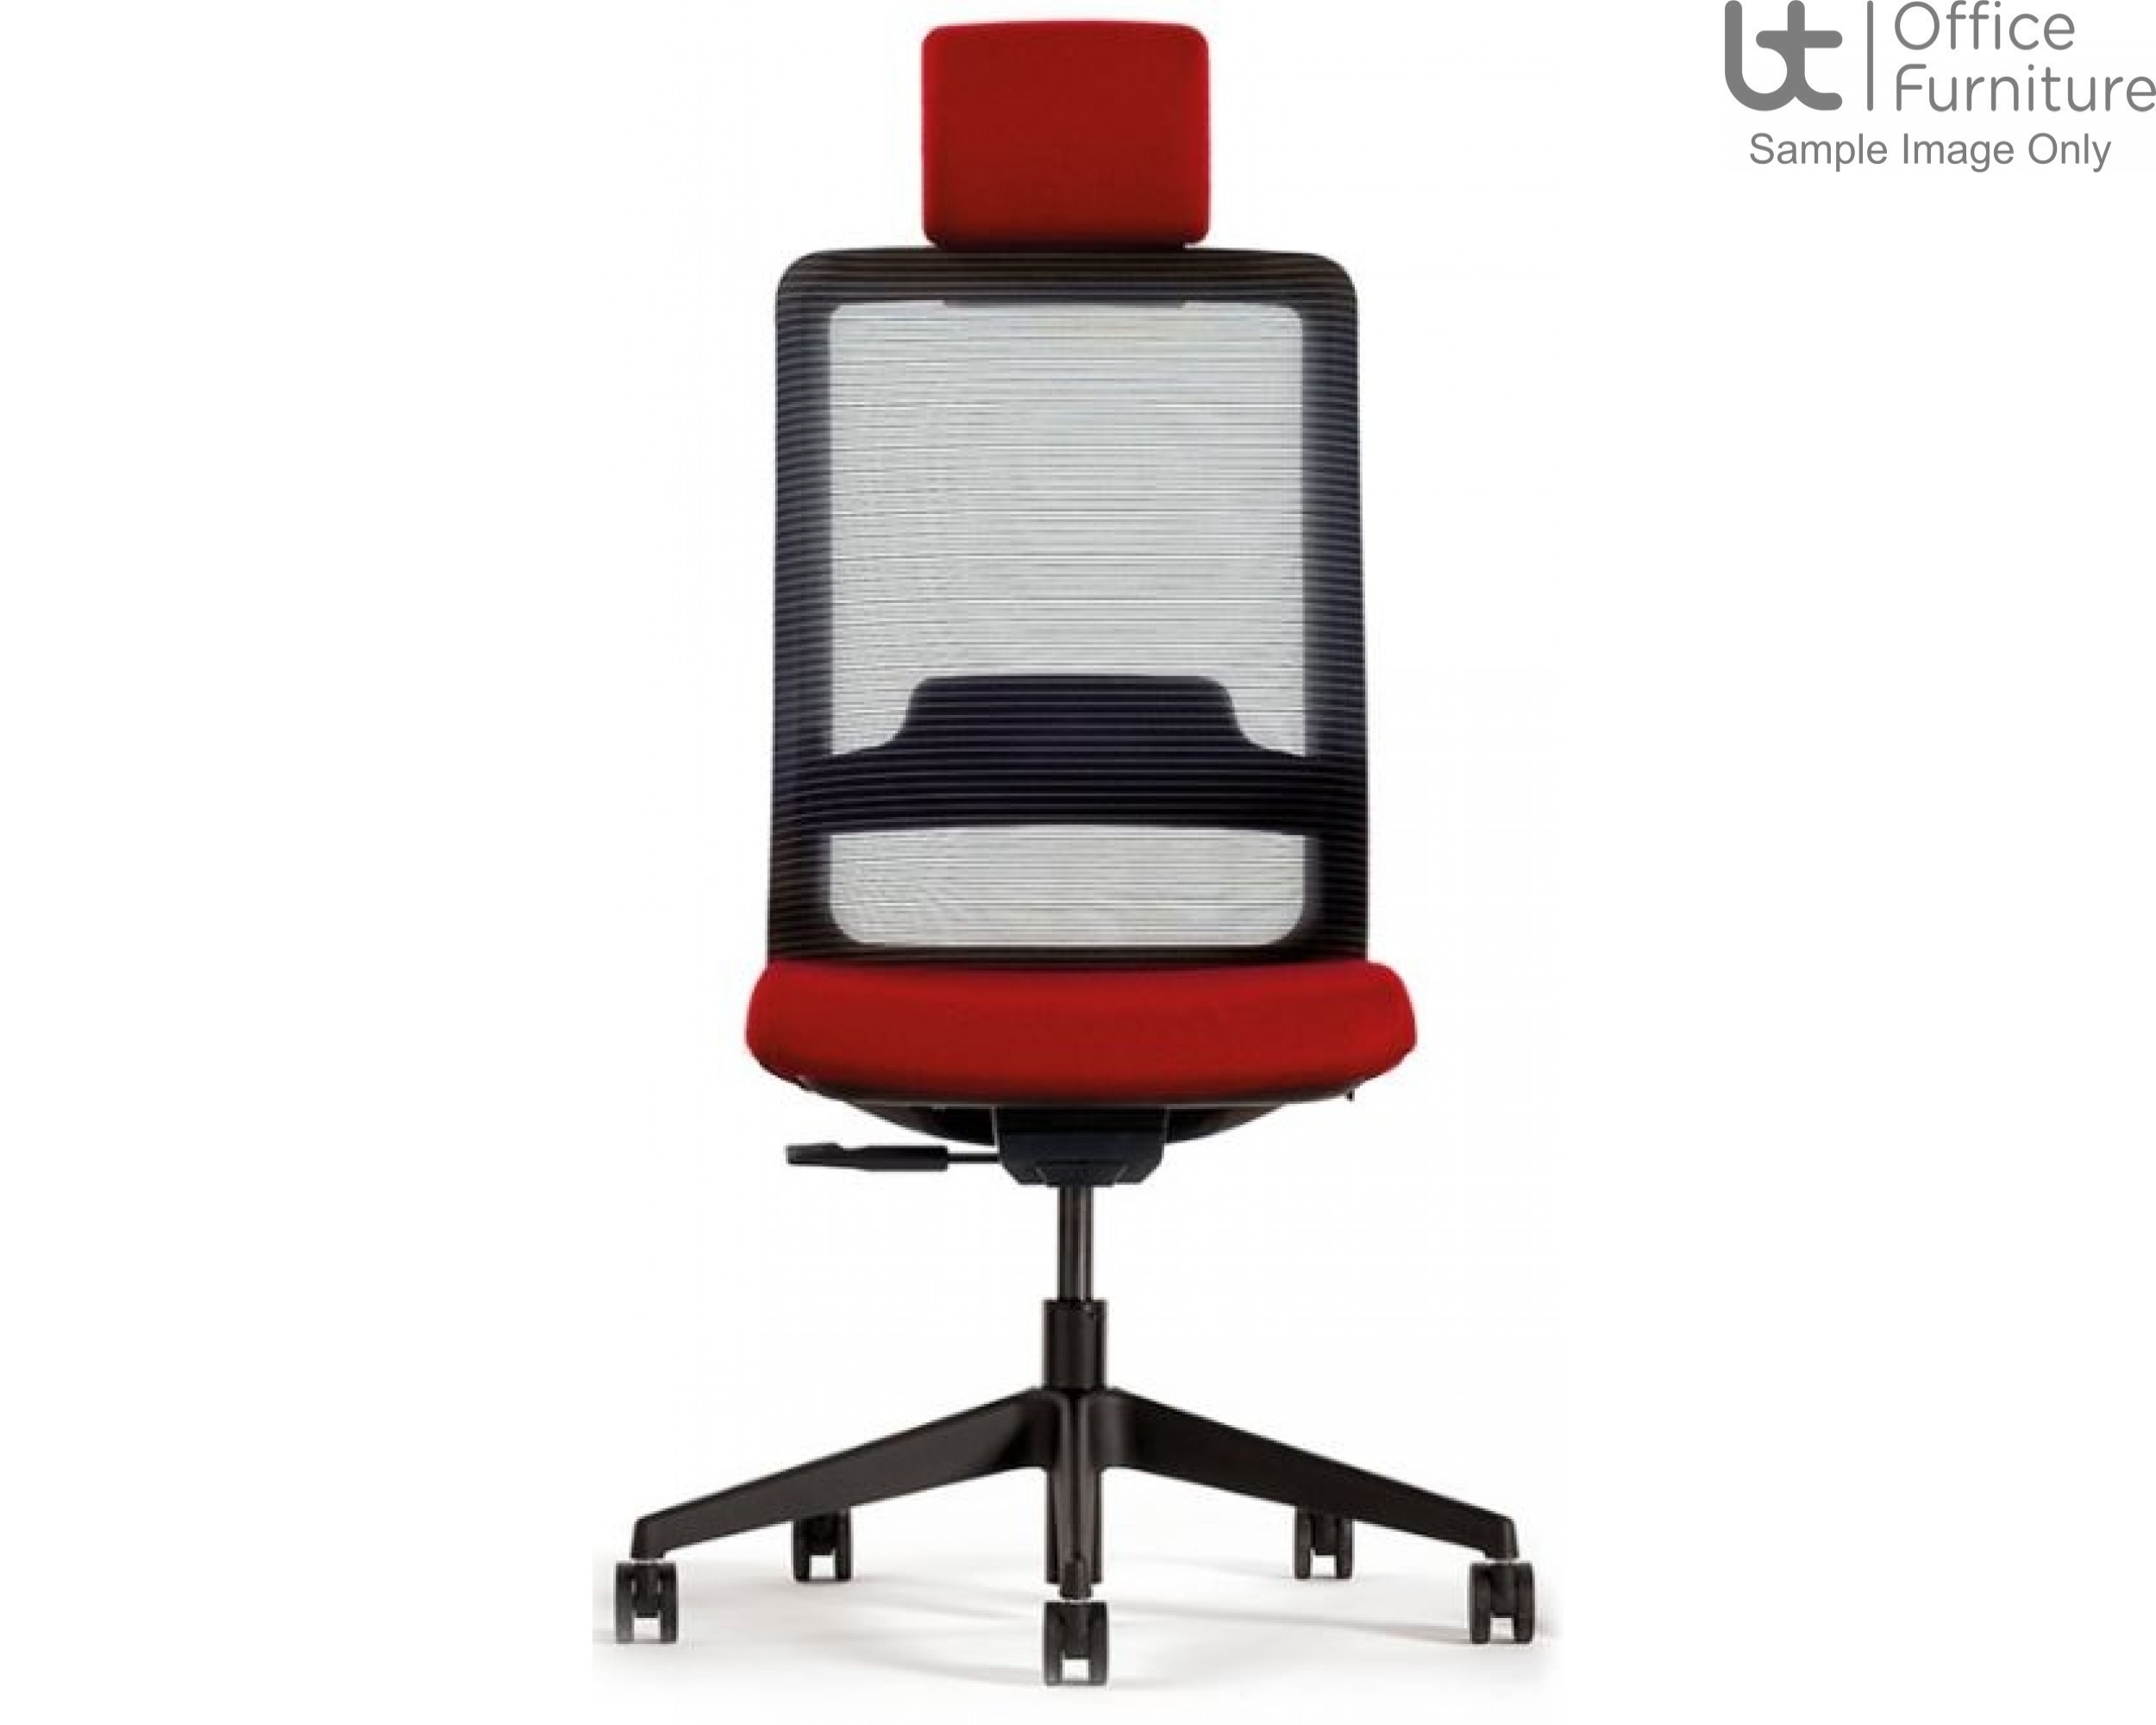 Verco Operator/Task Chair - Max High Back Task Chair with Headrest